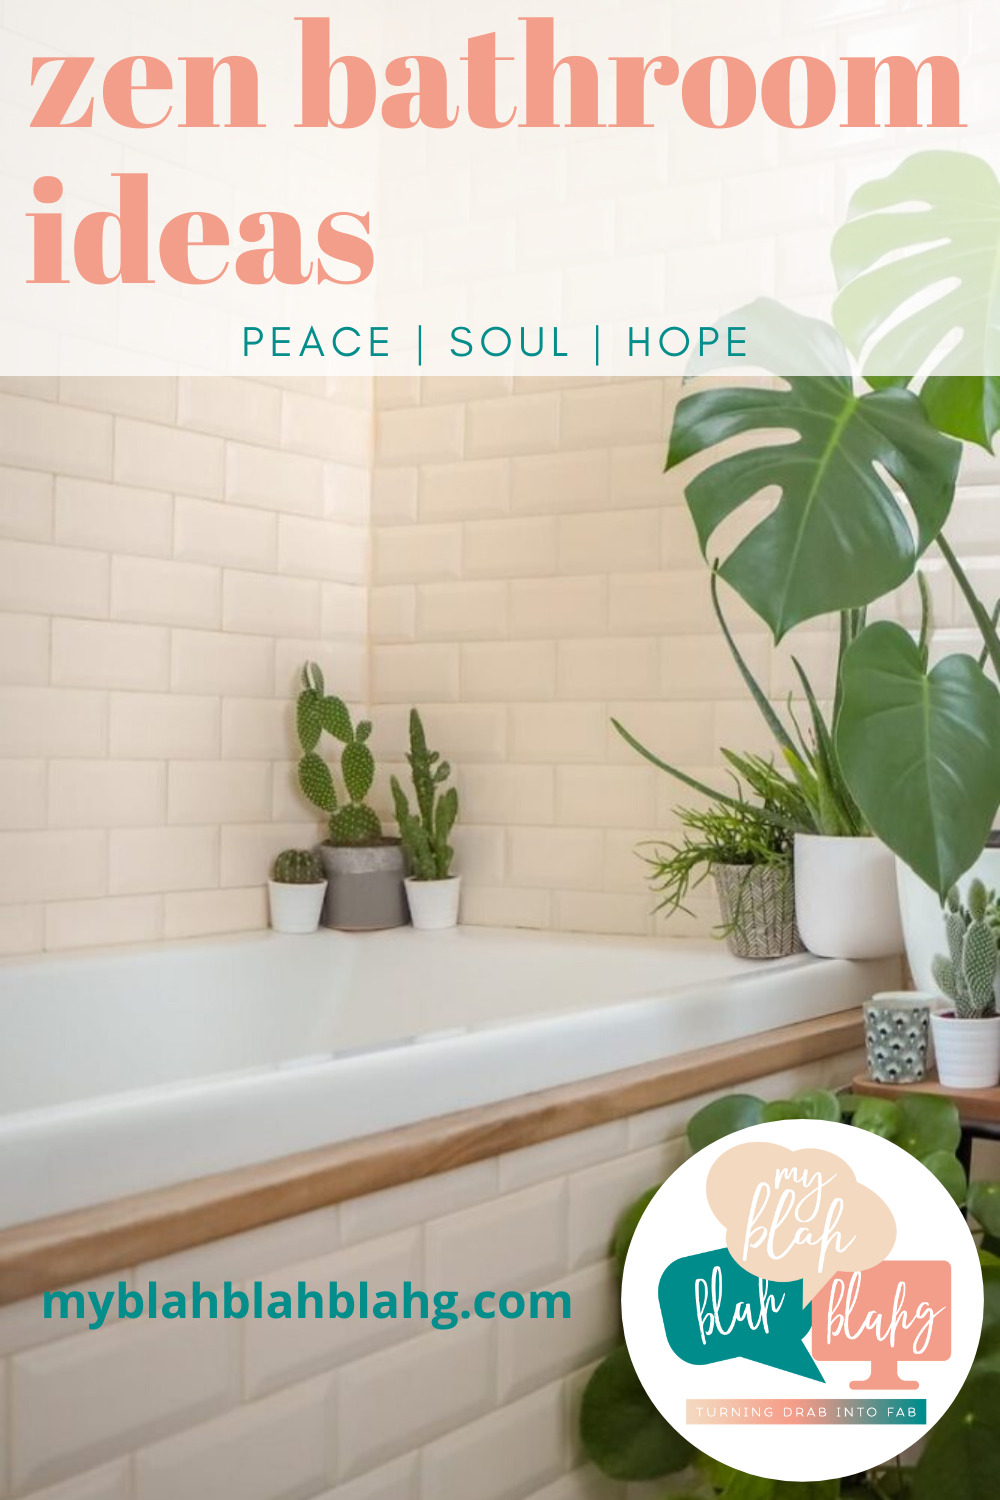 Make the bathroom the most relaxing place in your home with these easy DIY projects. With a little effort, you can make your bathroom completely spa-like. Which of these will you try first? #zen #bathroom #myblahblahblahgblog